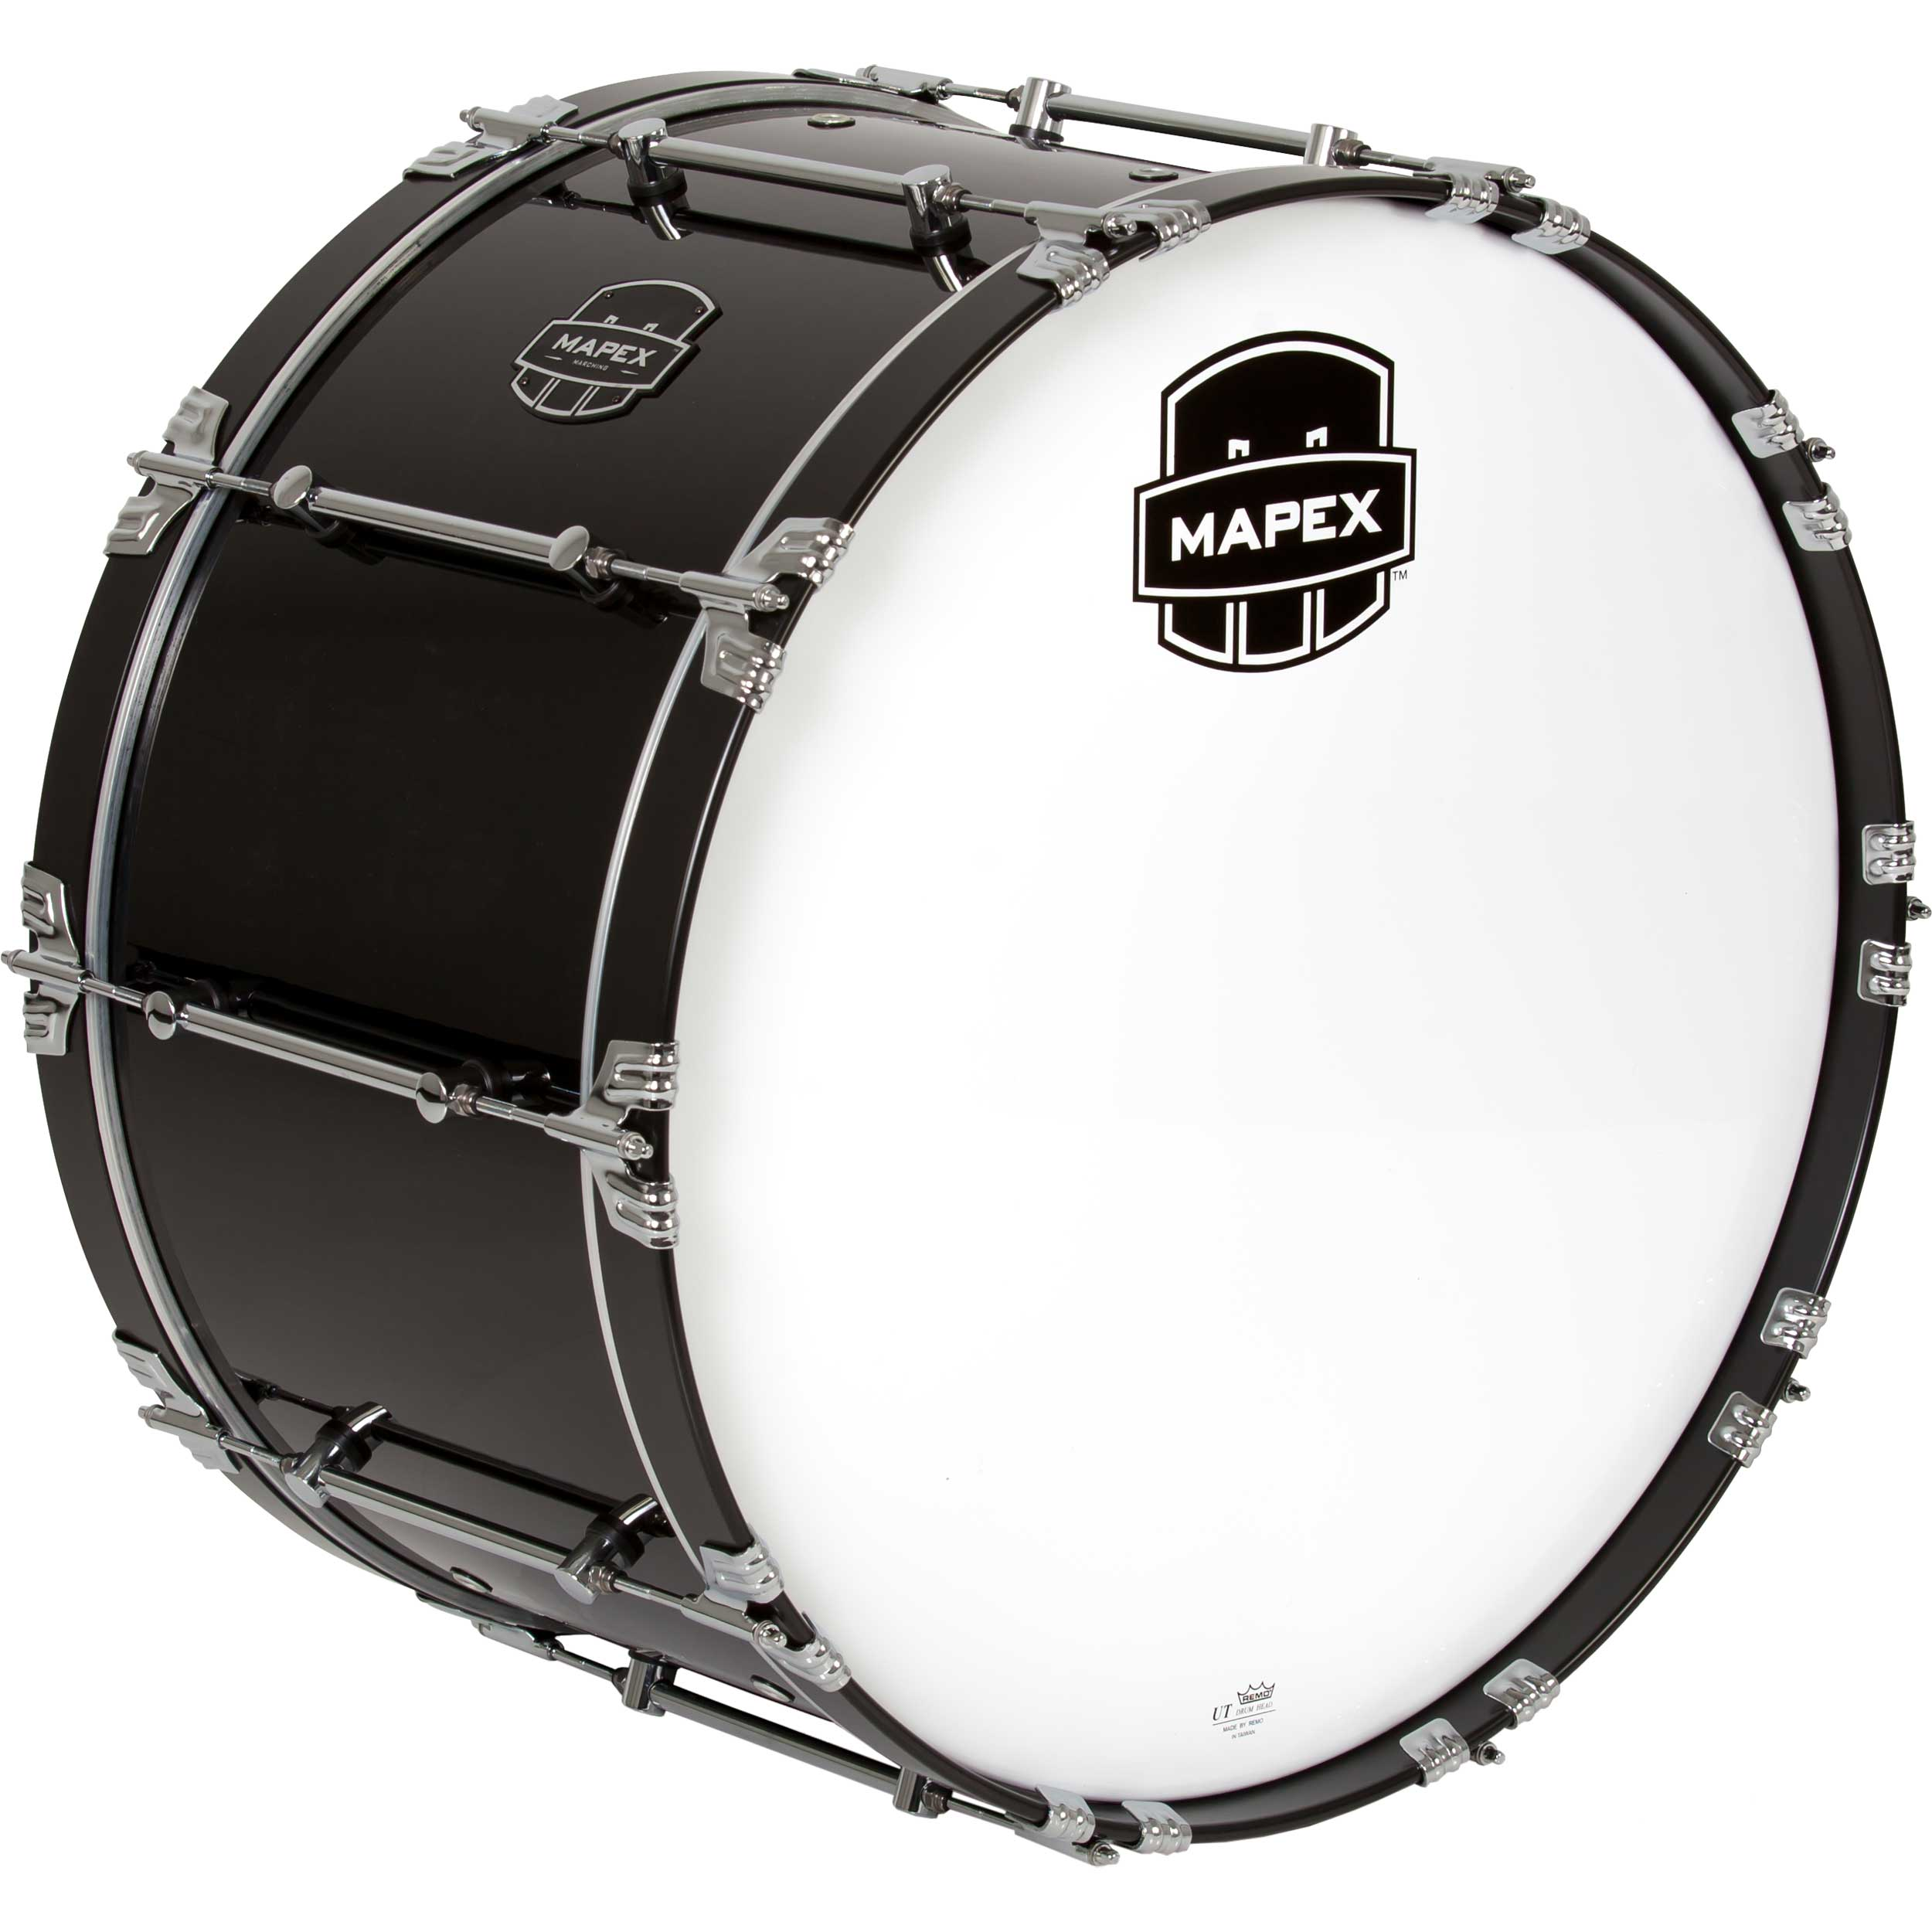 mapex 26 quantum marching bass drum in gloss black qcb2614 bl gc. Black Bedroom Furniture Sets. Home Design Ideas